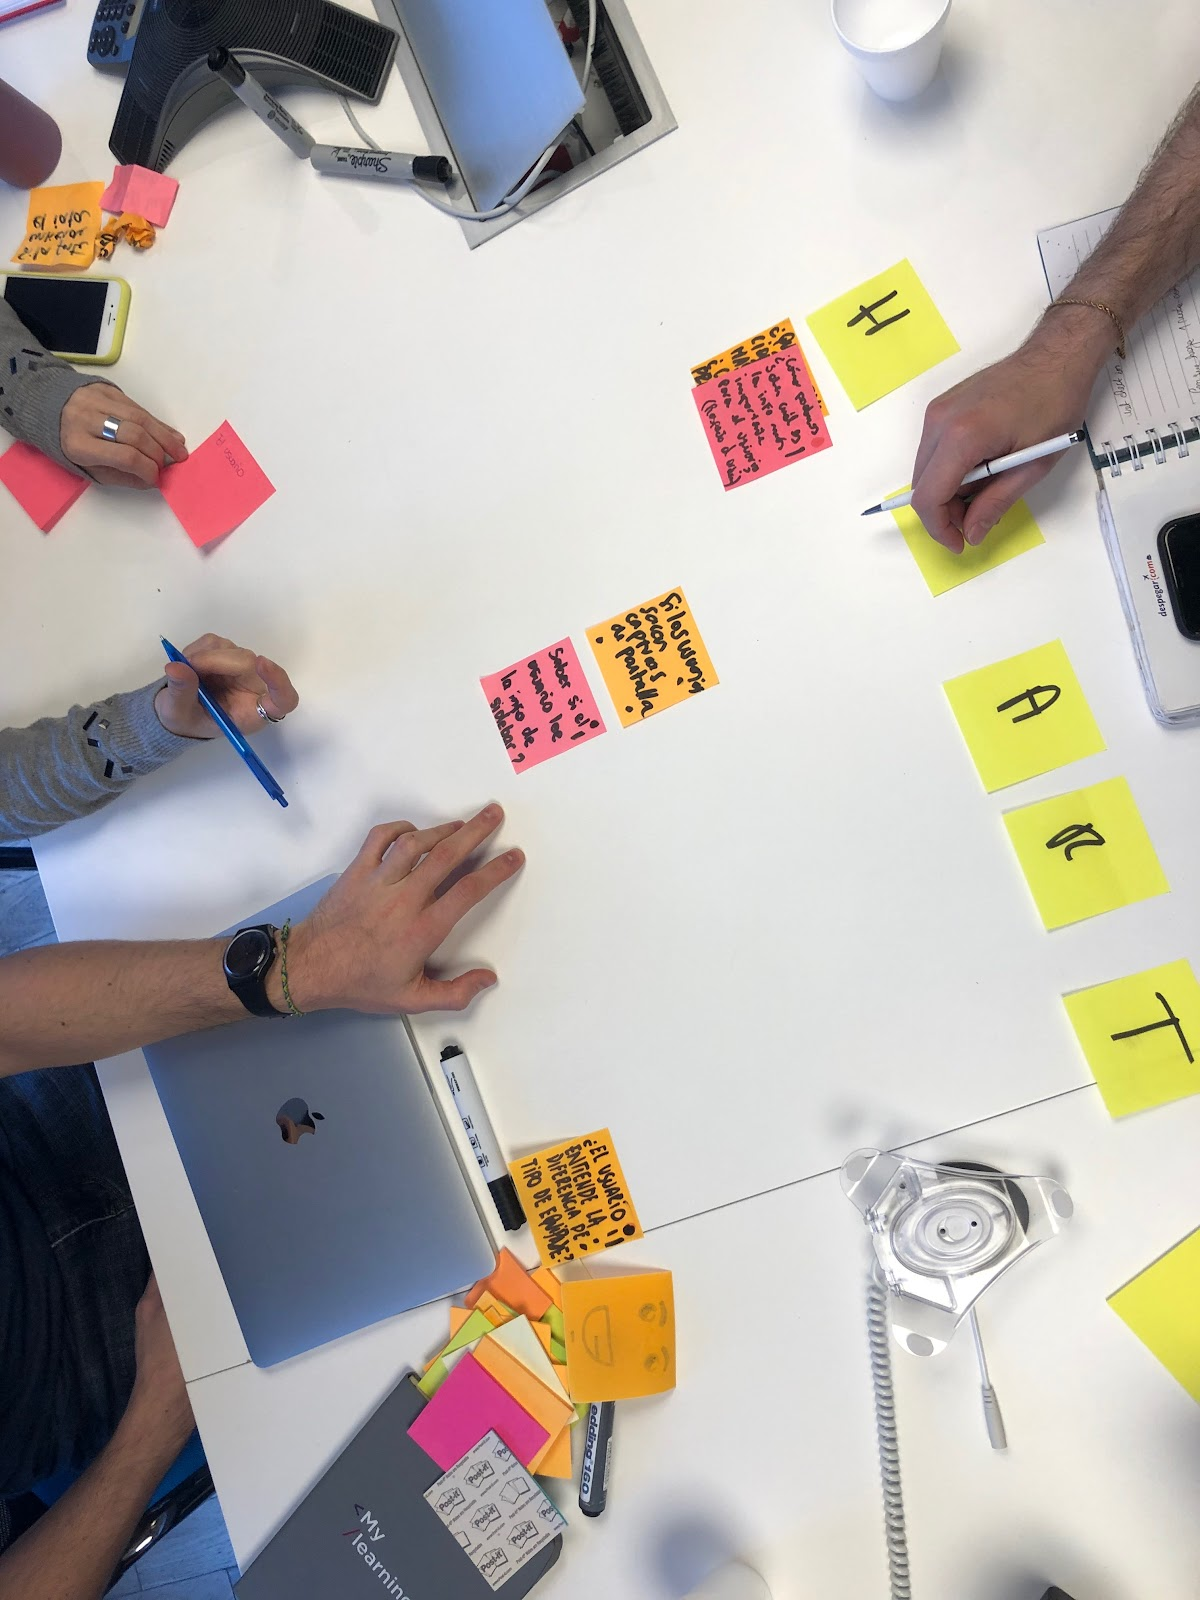 People working on post-it notes